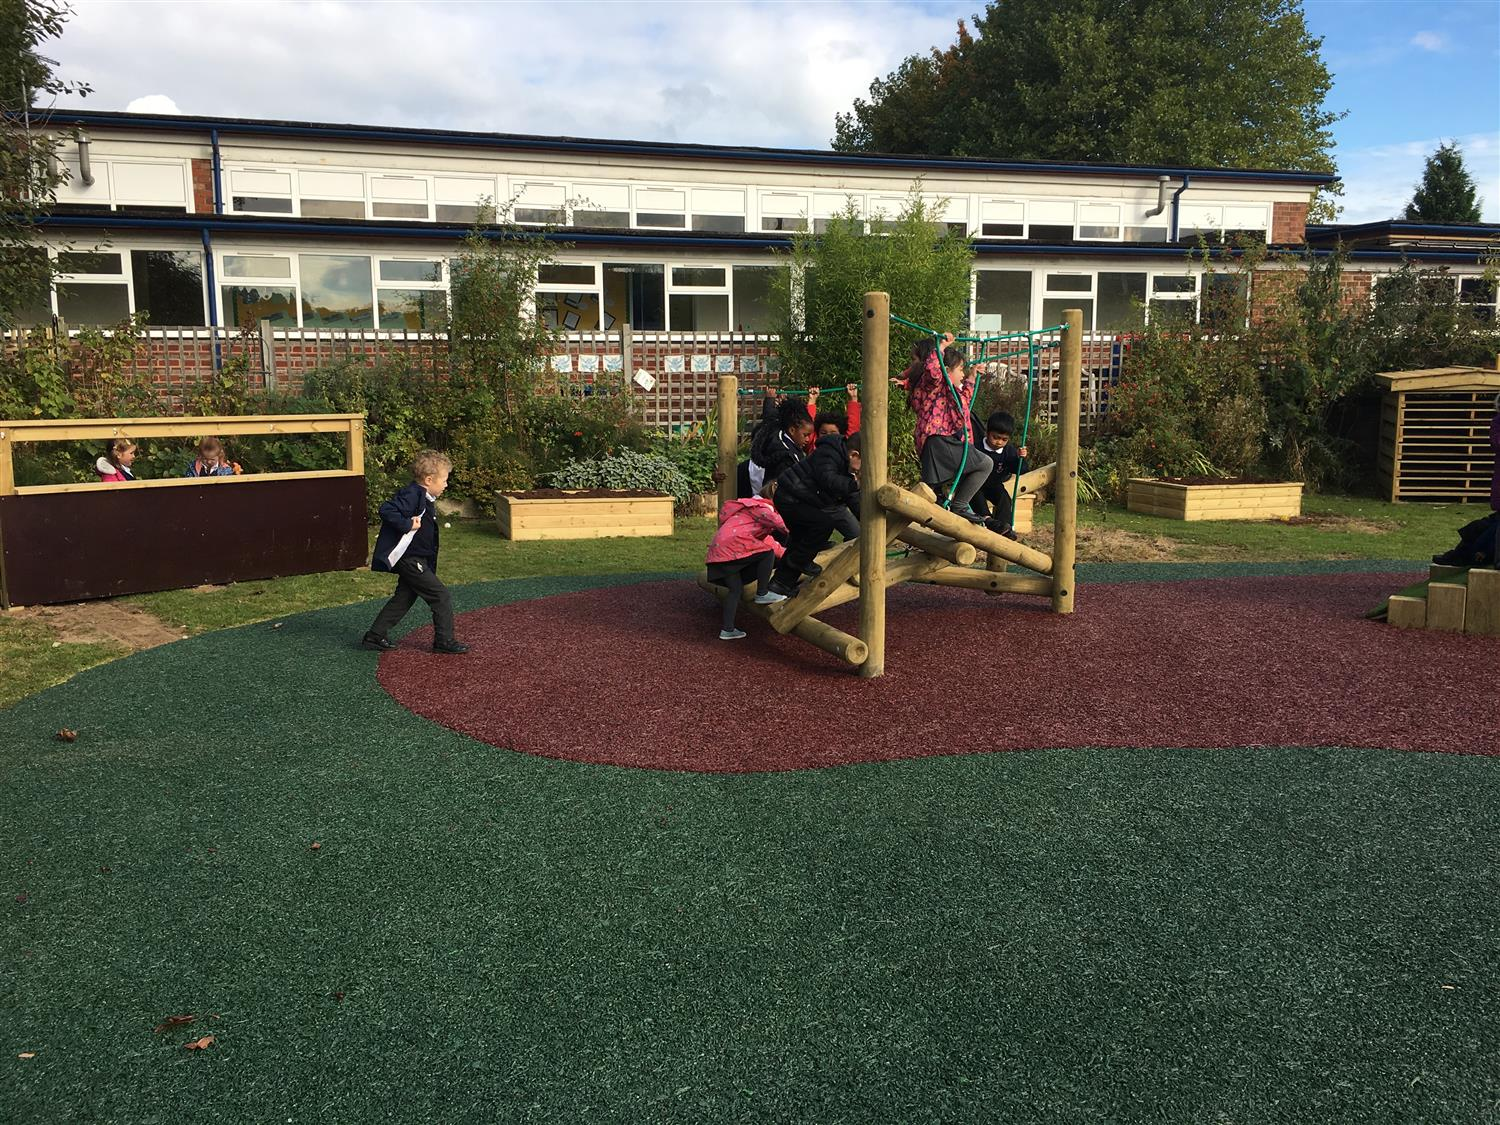 paganel primary schools outdoor classroom pentagon play